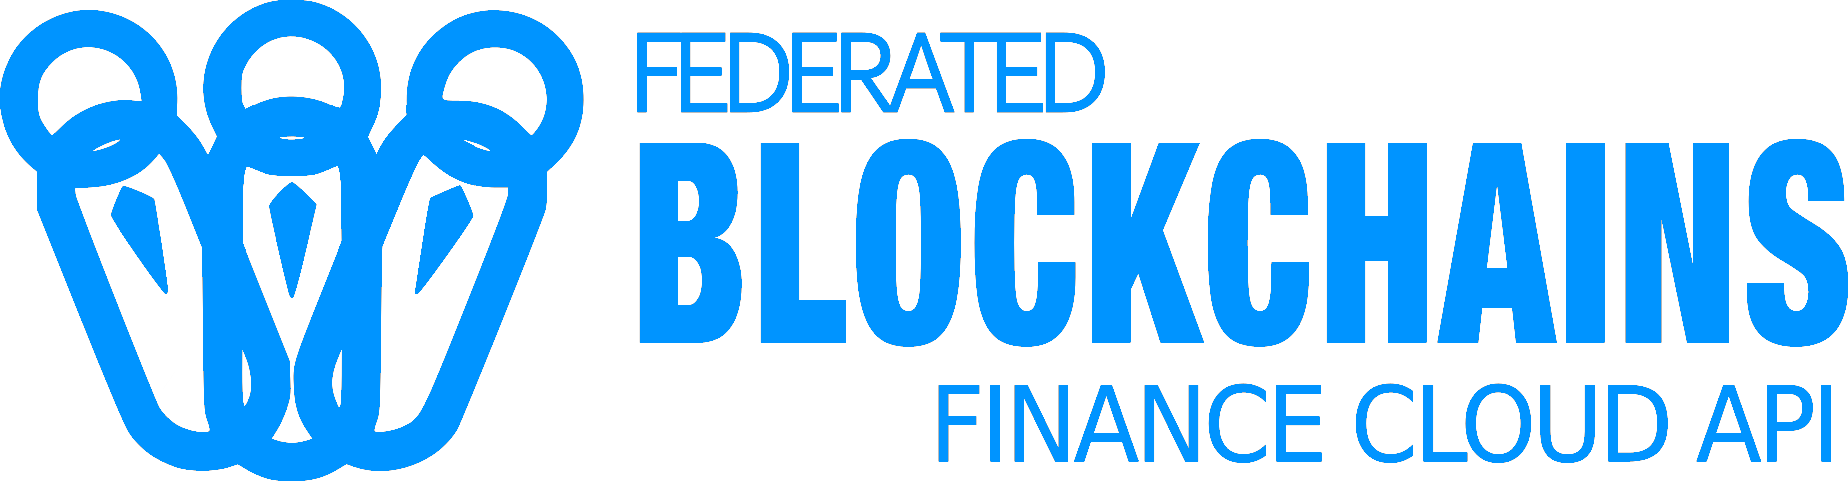 Federated Blockchains